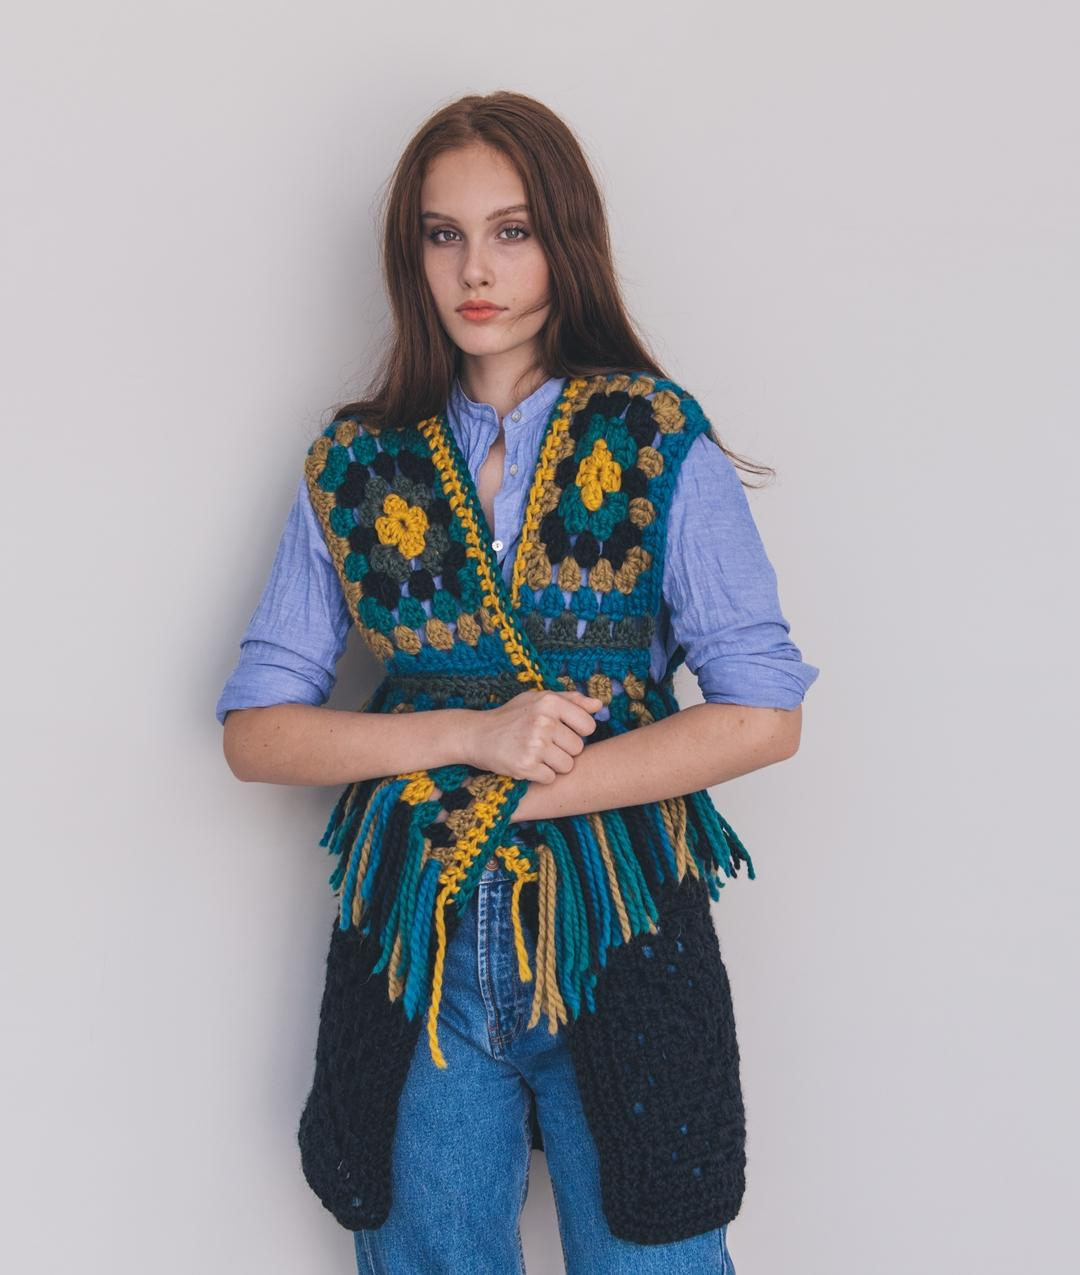 Fall / Winter 2018-19 Collection - Sweater and Cardigan - Granny Coachella Vest - 1